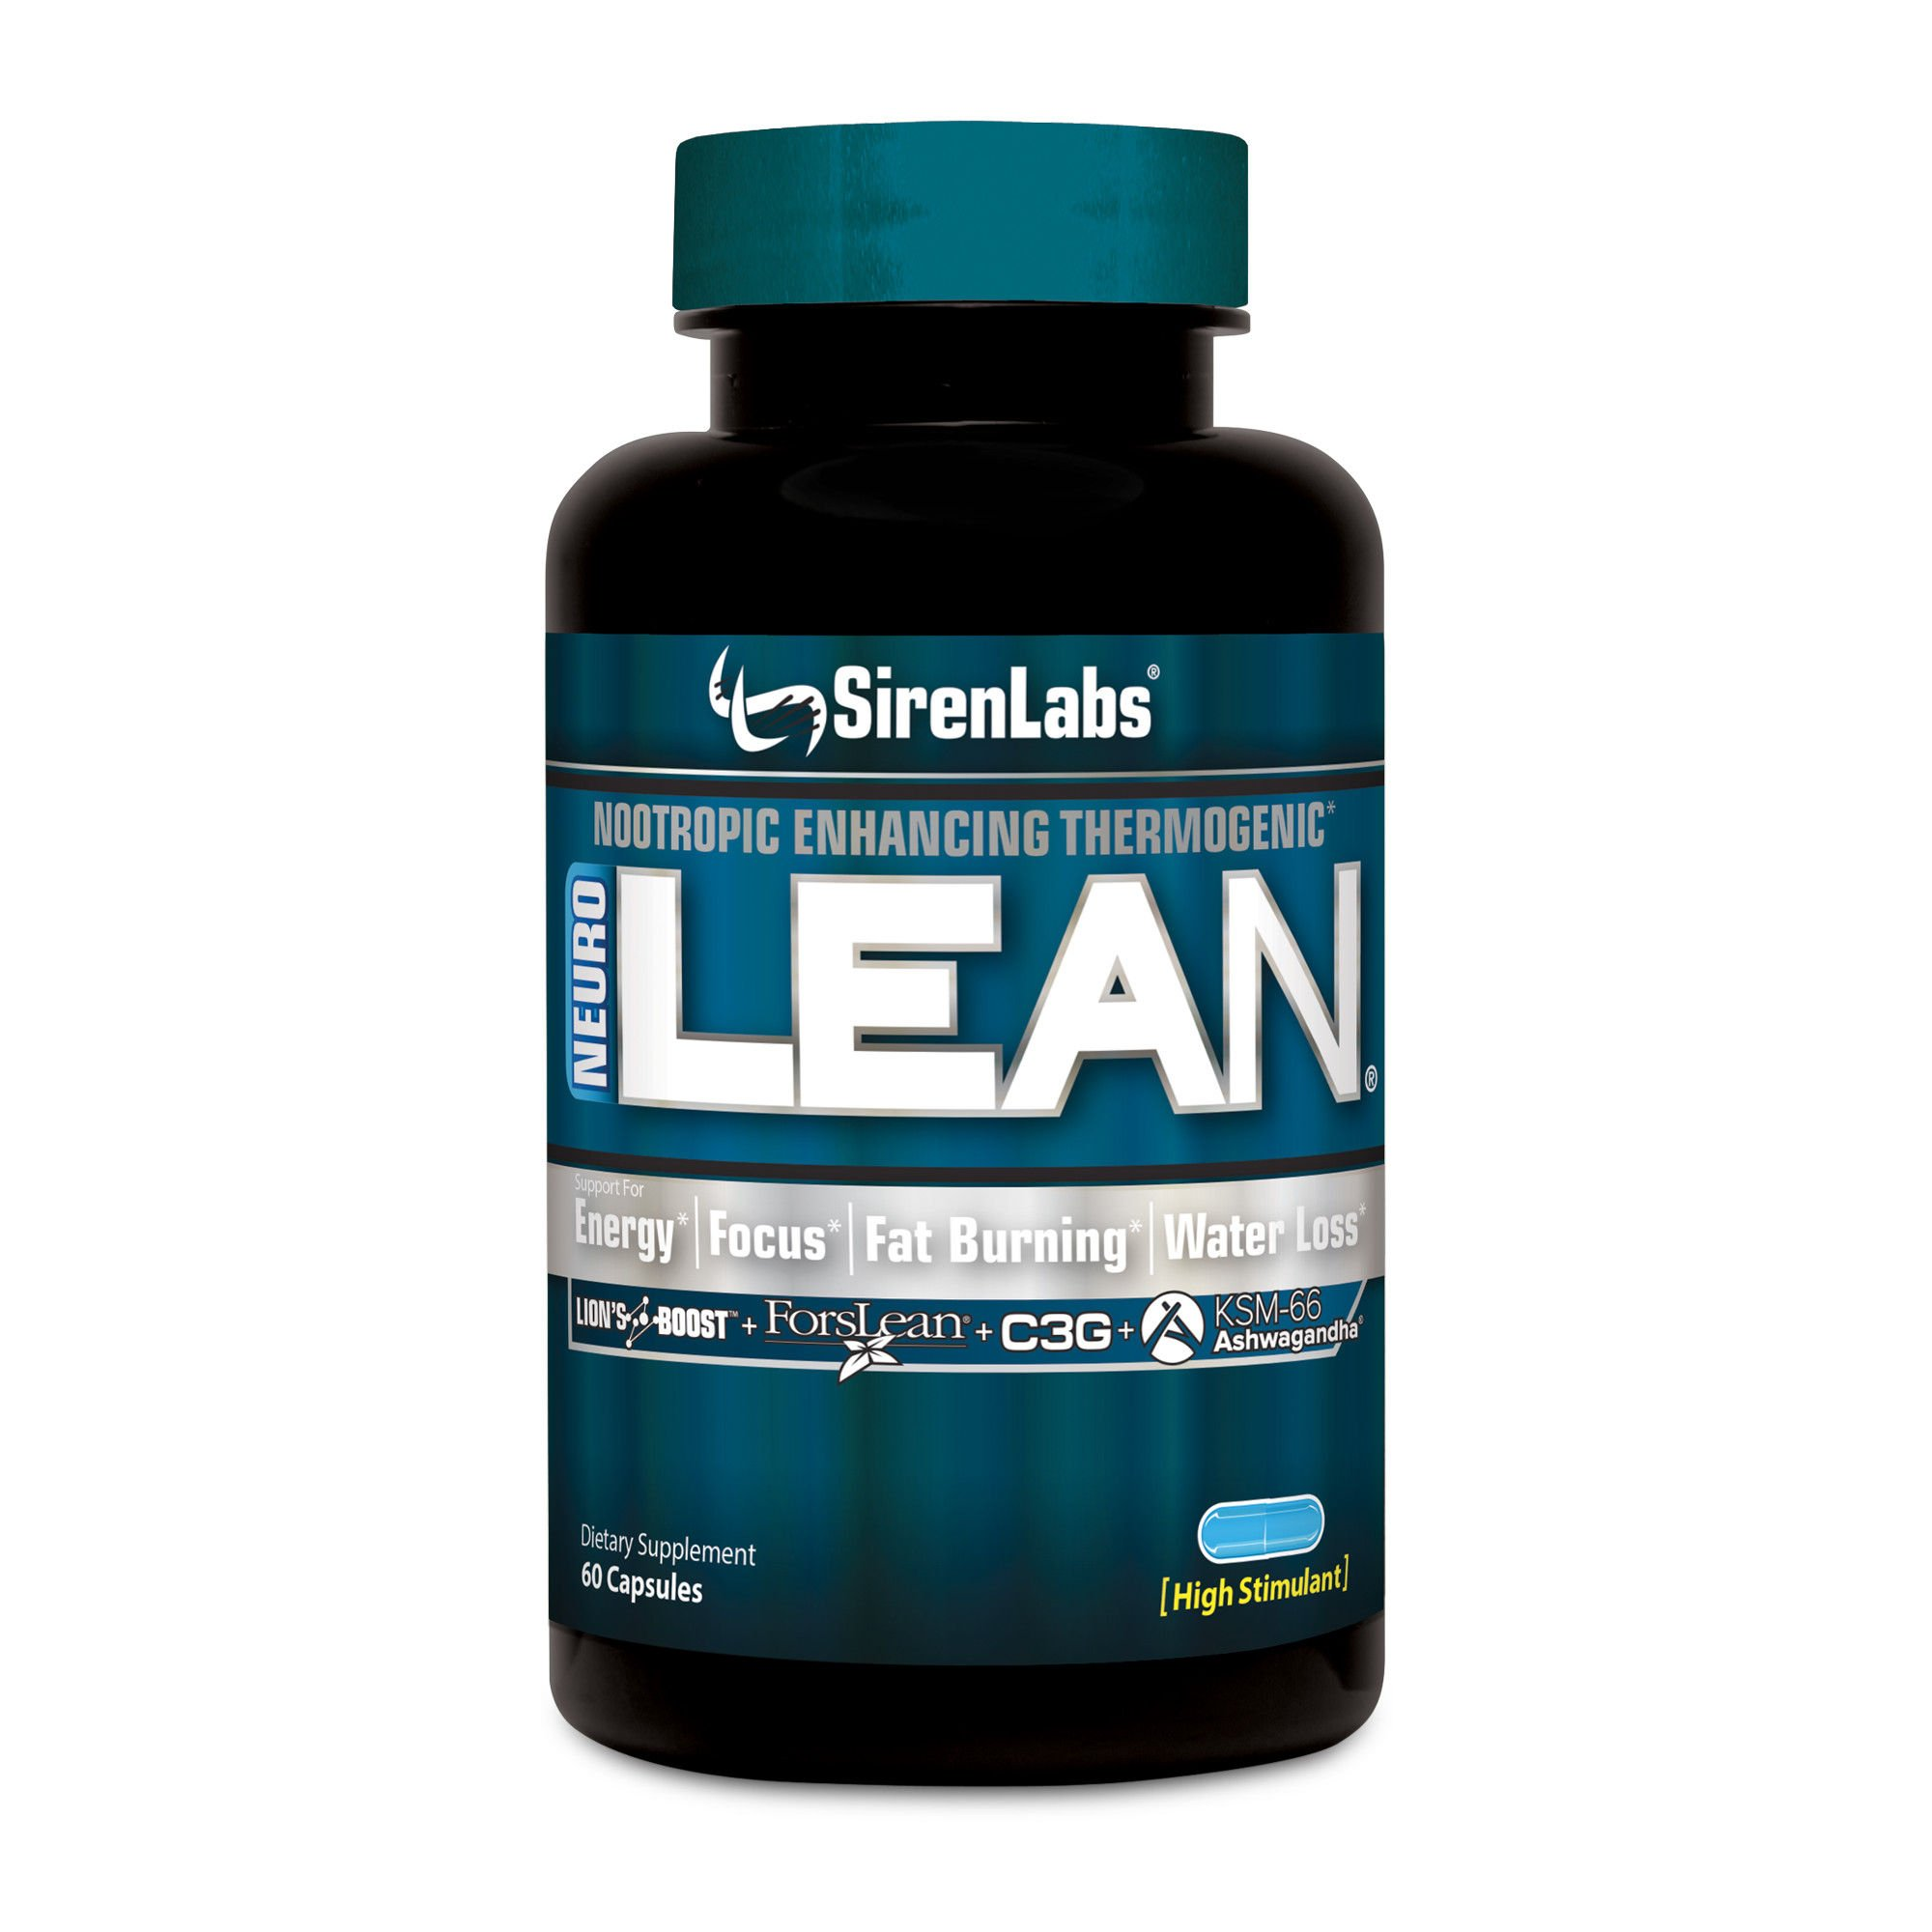 Siren Labs Neuro Lean - Concentrated Nootropic Enhancing Thermogenic for Health, Water Loss, Increase Fat Burning, Supercharge Energy and Mental Focus - Dietary Supplement - 60 Capsules